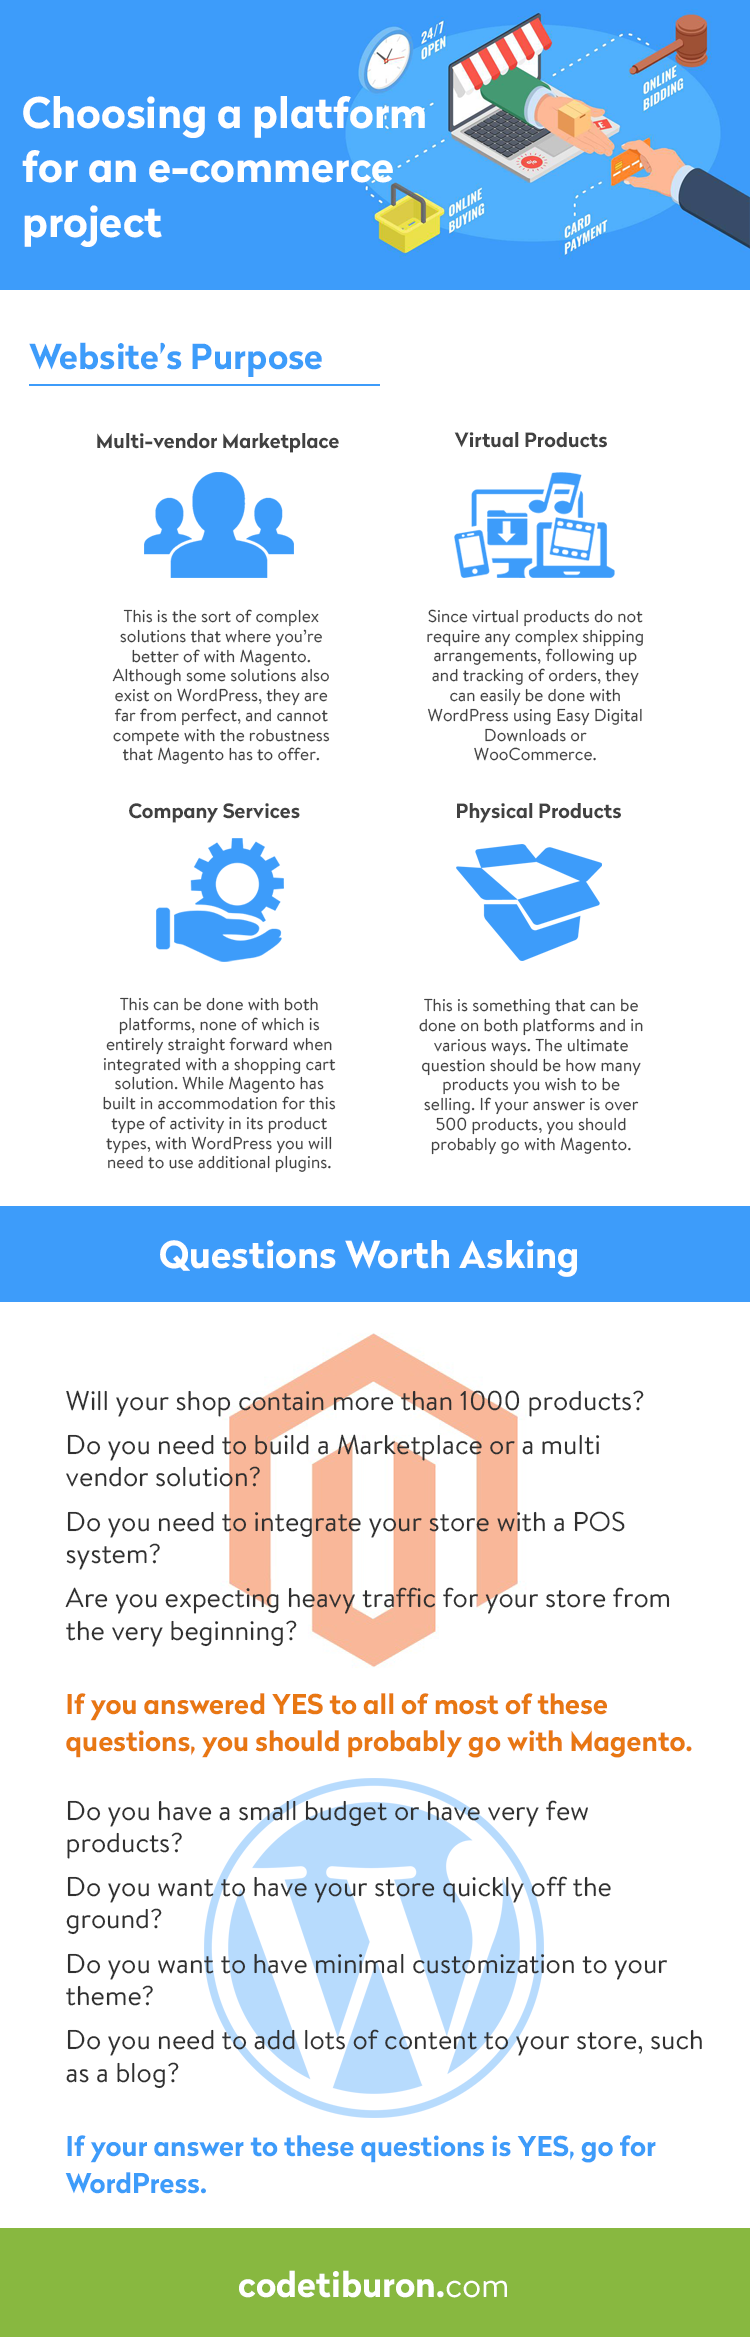 How to choose an e-commerce platform